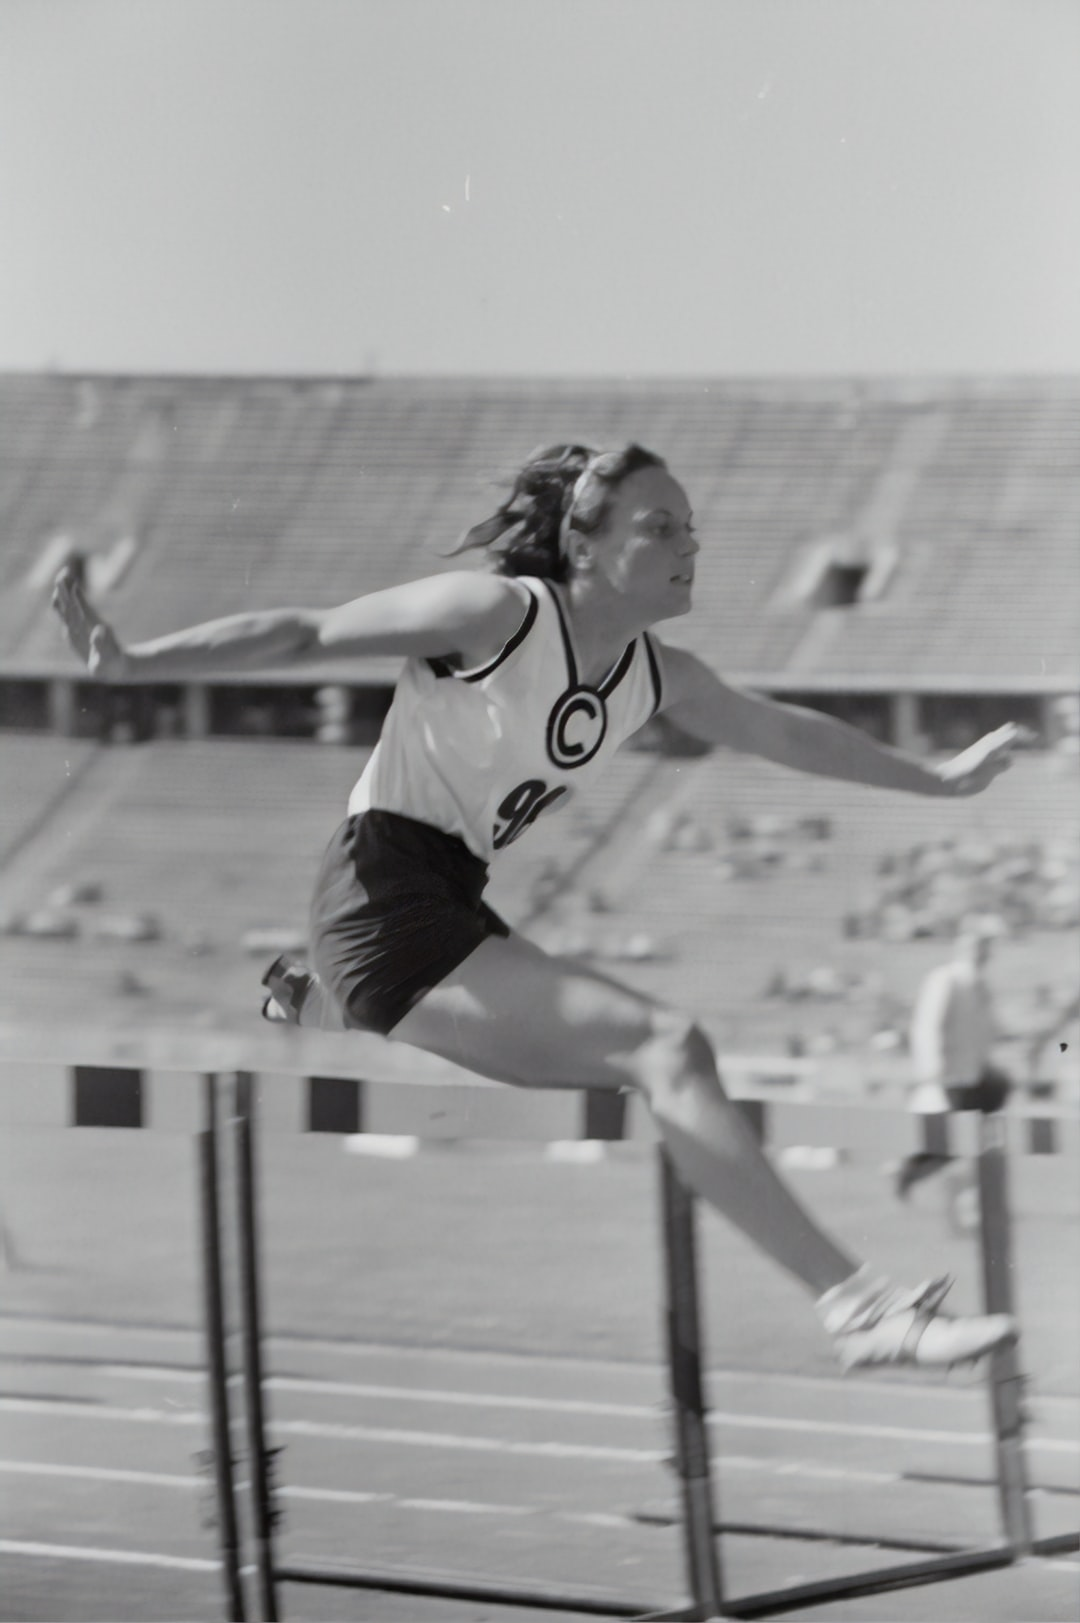 Women's hurdles. Athletics championships 1940